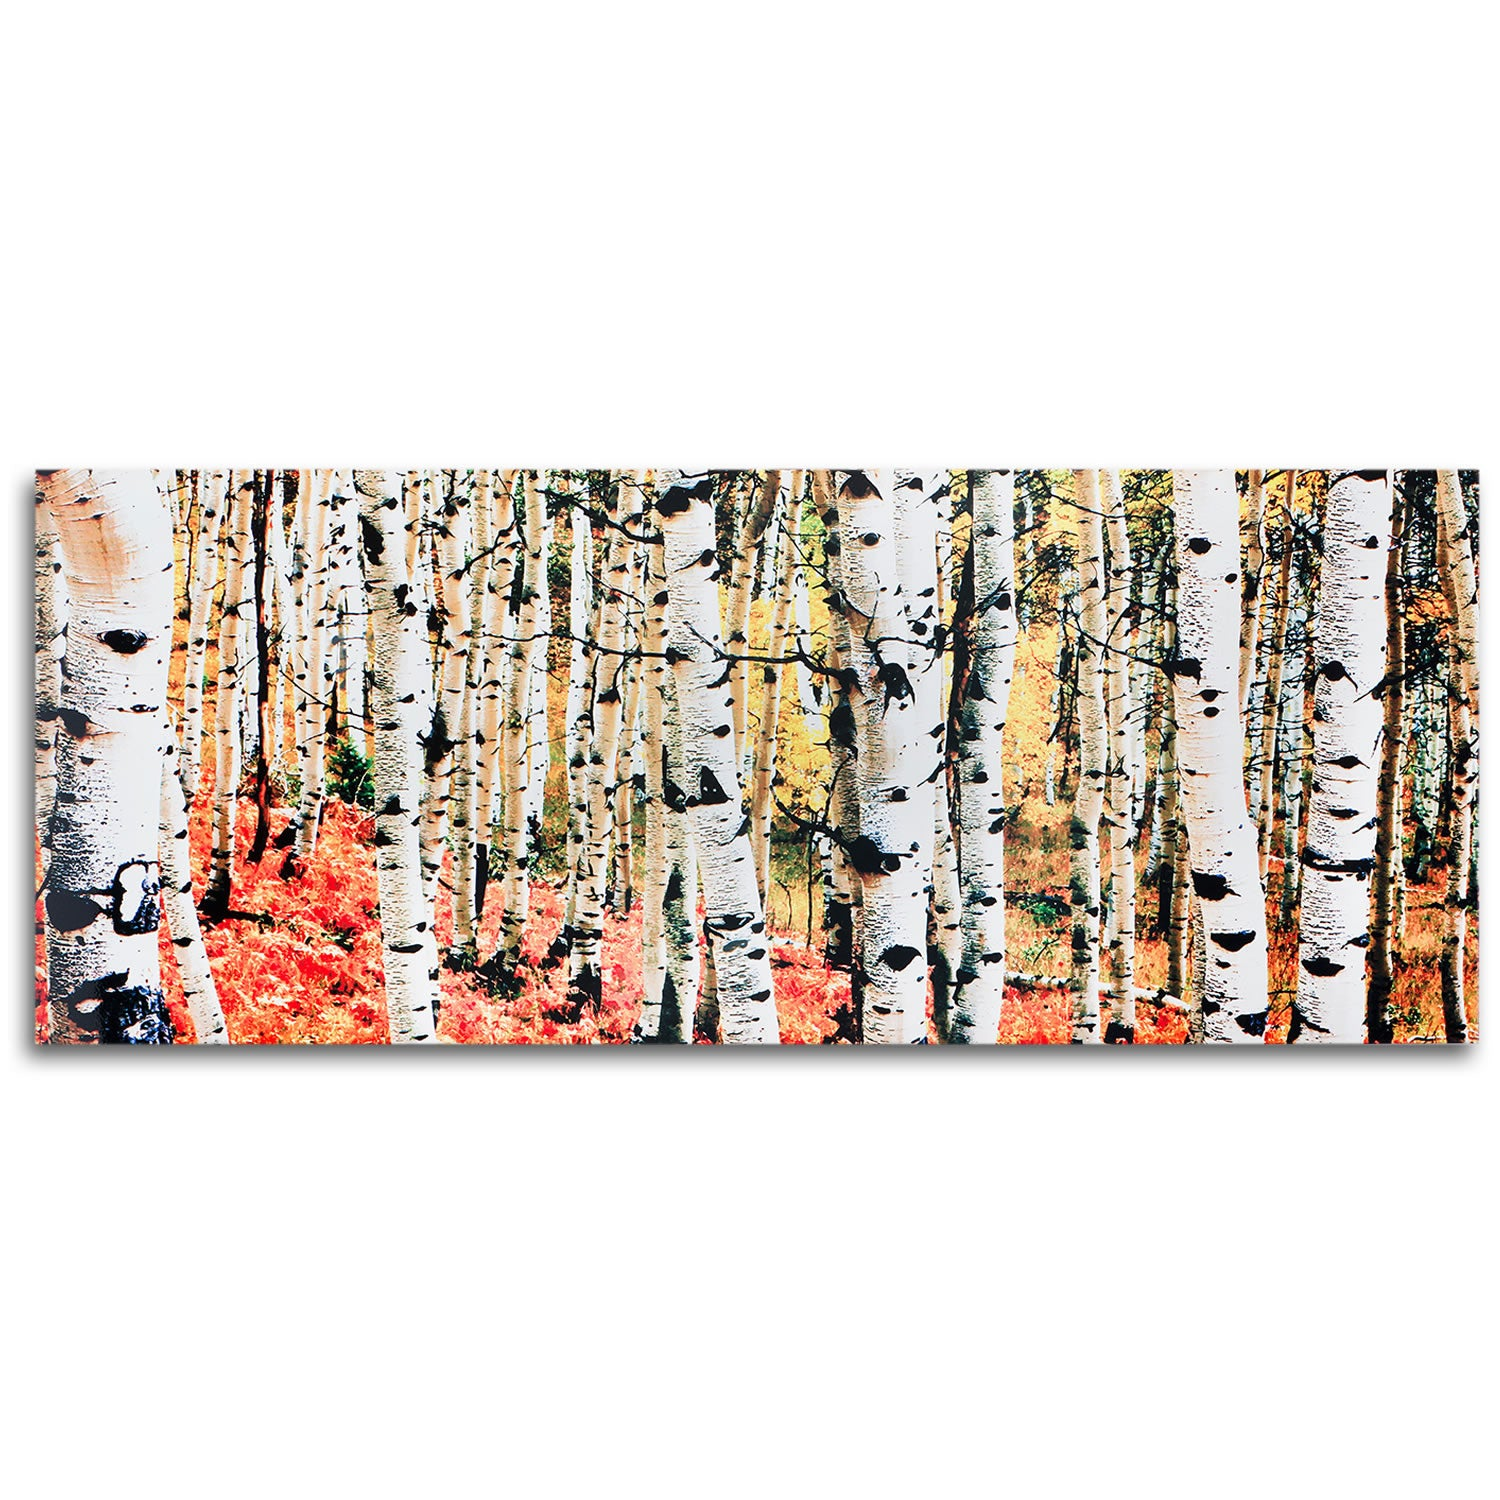 Aspen Grove - Large Indoor/Outdoor Modern Metal Wall Art